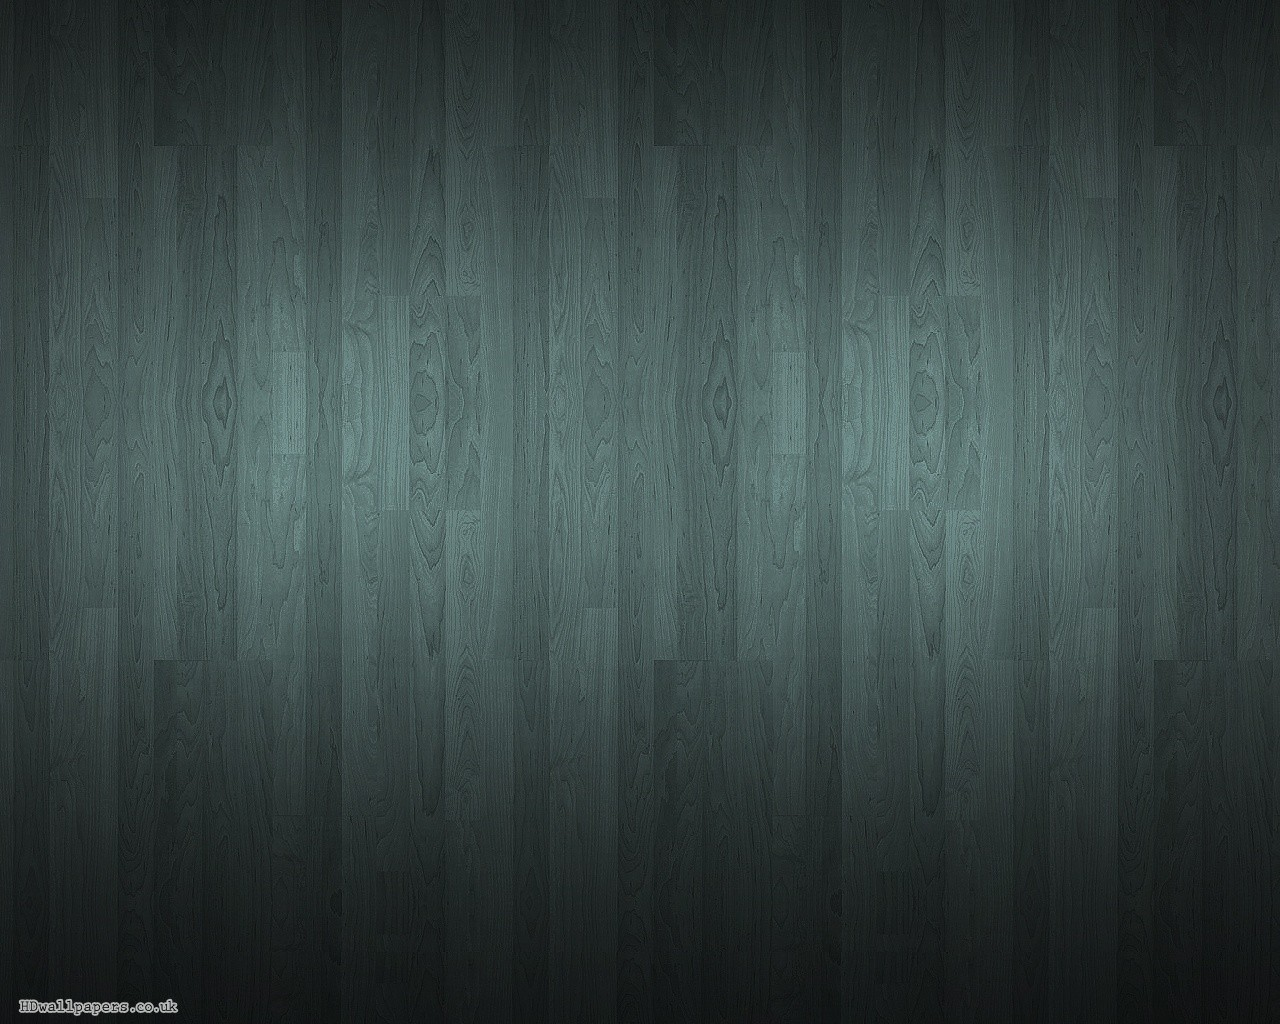 floor Green minimalistic Wood HD Wallpaper